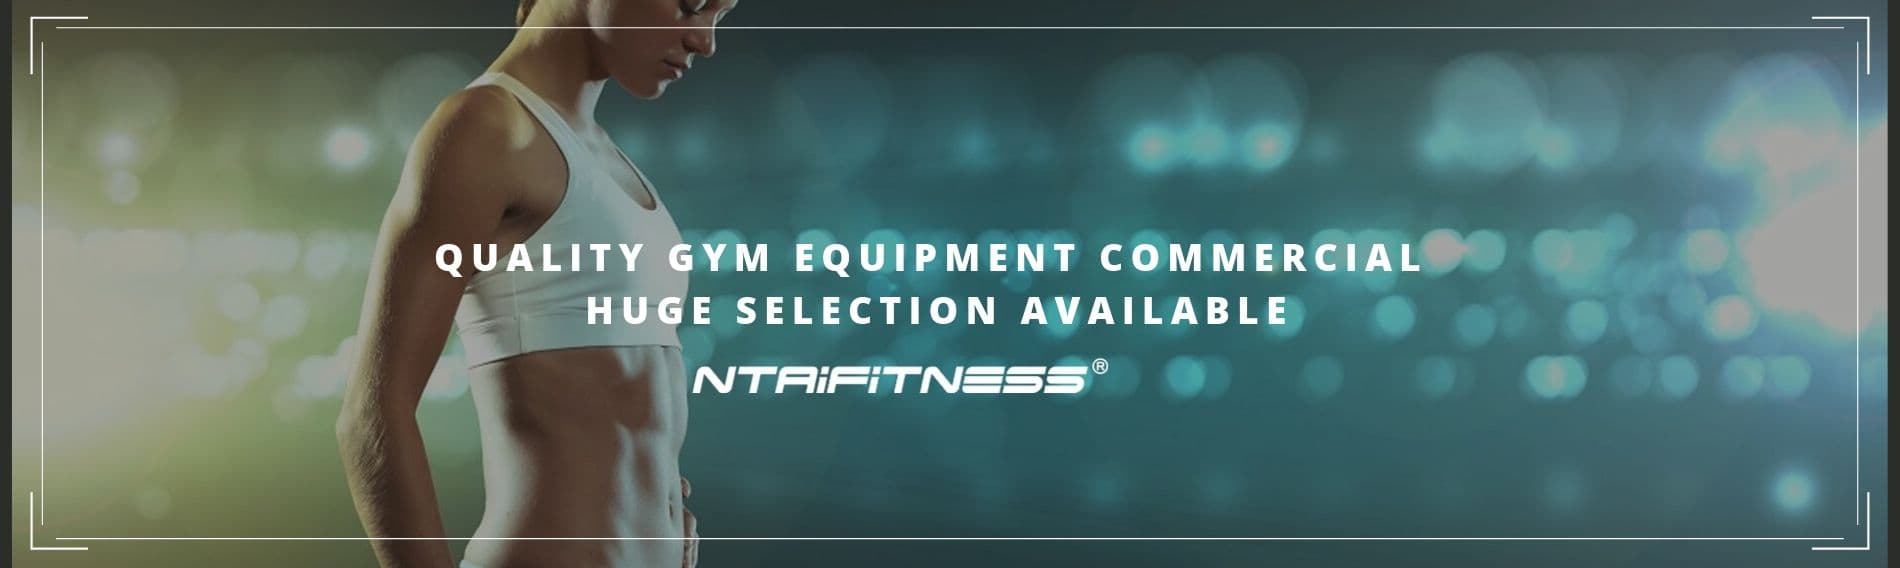 Quality Gym Equipment Commercial - Huge Selection Available